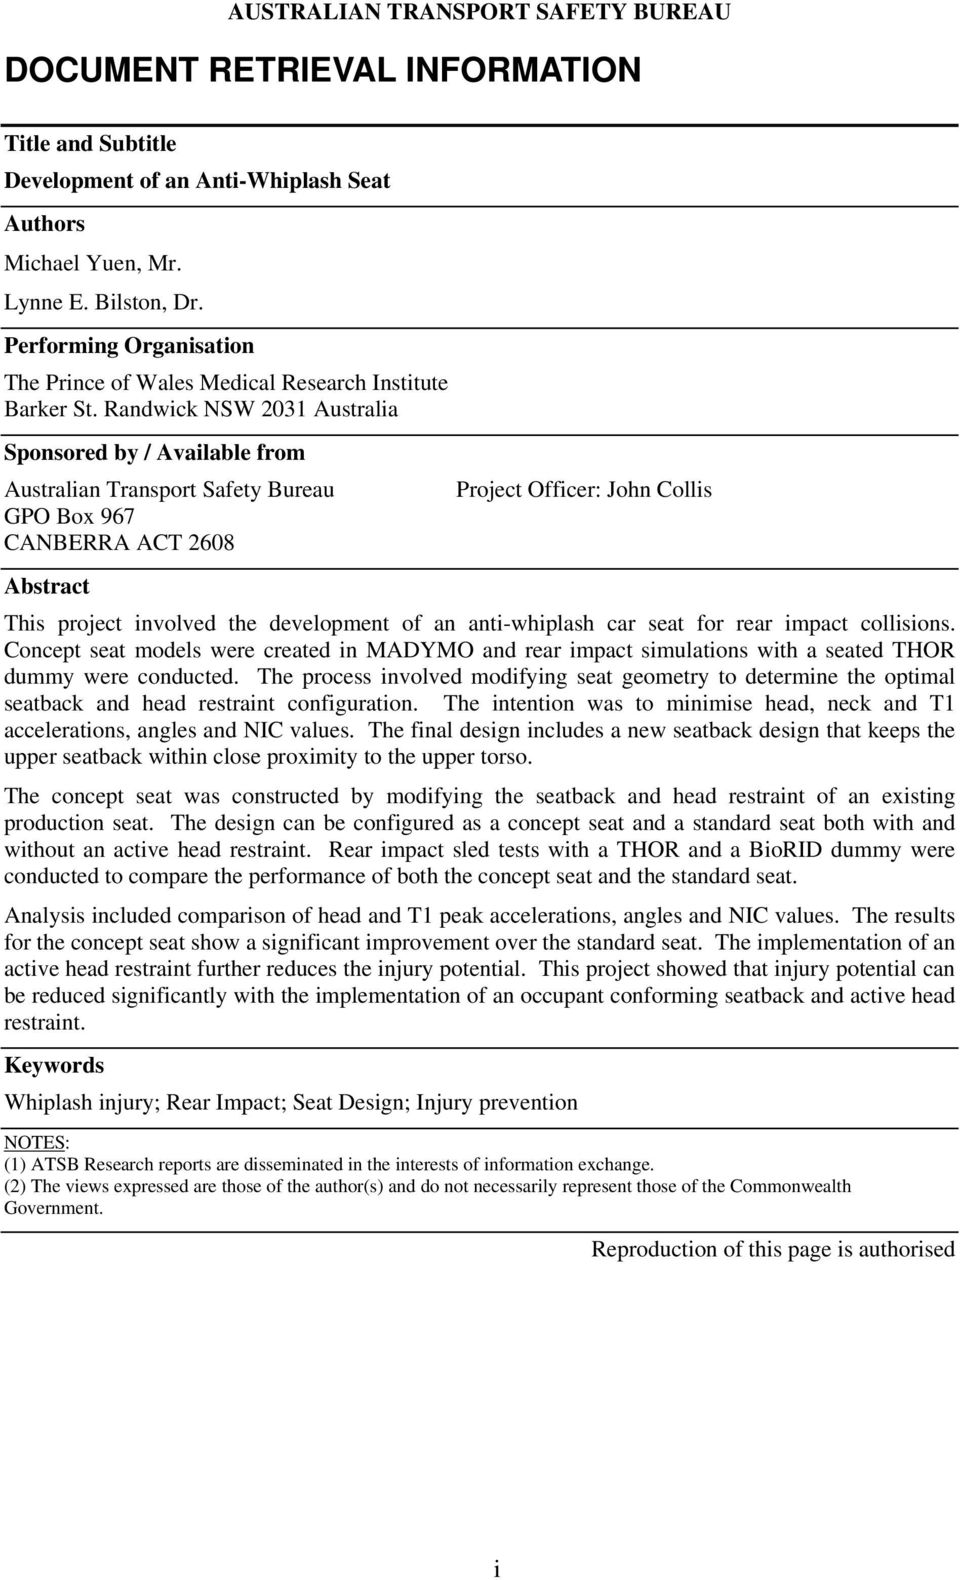 Randwick NSW 231 Australia Sponsored by / Available from Australian Transport Safety Bureau GPO Box 967 CANBERRA ACT 268 Project Officer: John Collis Abstract This project involved the development of